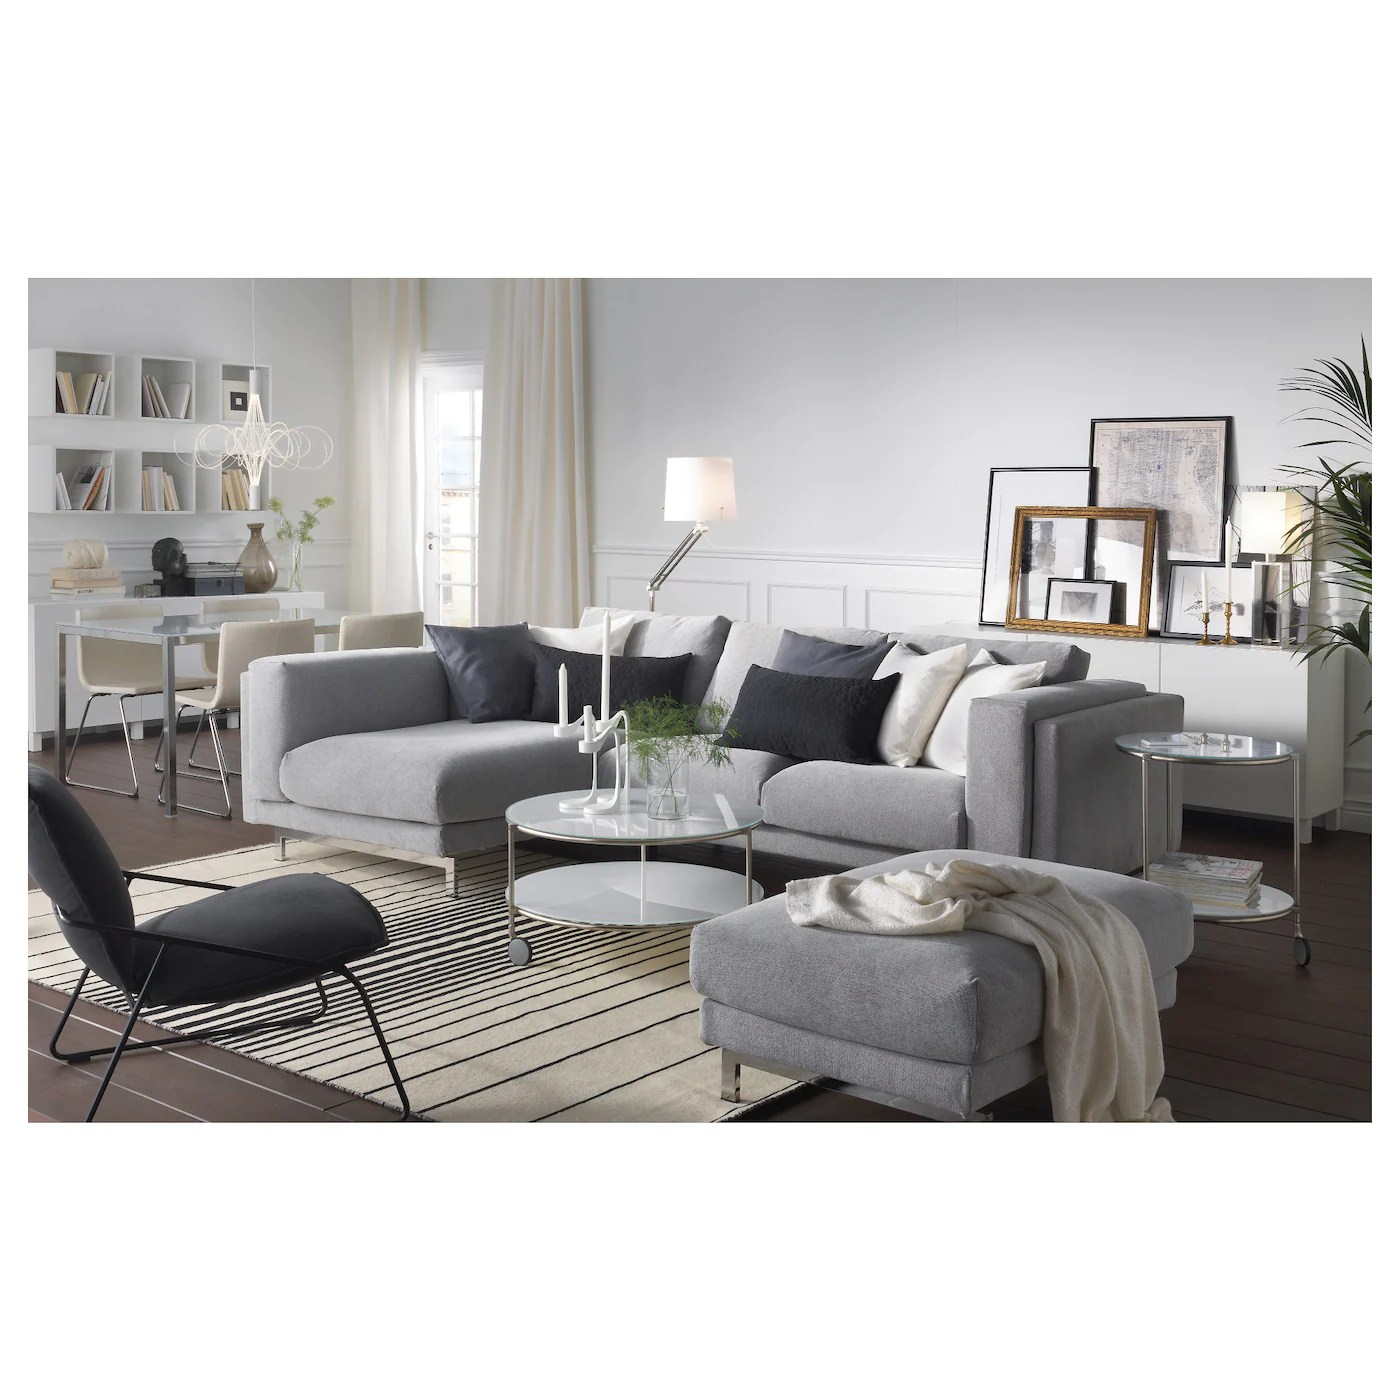 Ikea Sofa Nockeby Test Nockeby Two Seat Sofa W Chaise Longue Left Tallmyra White